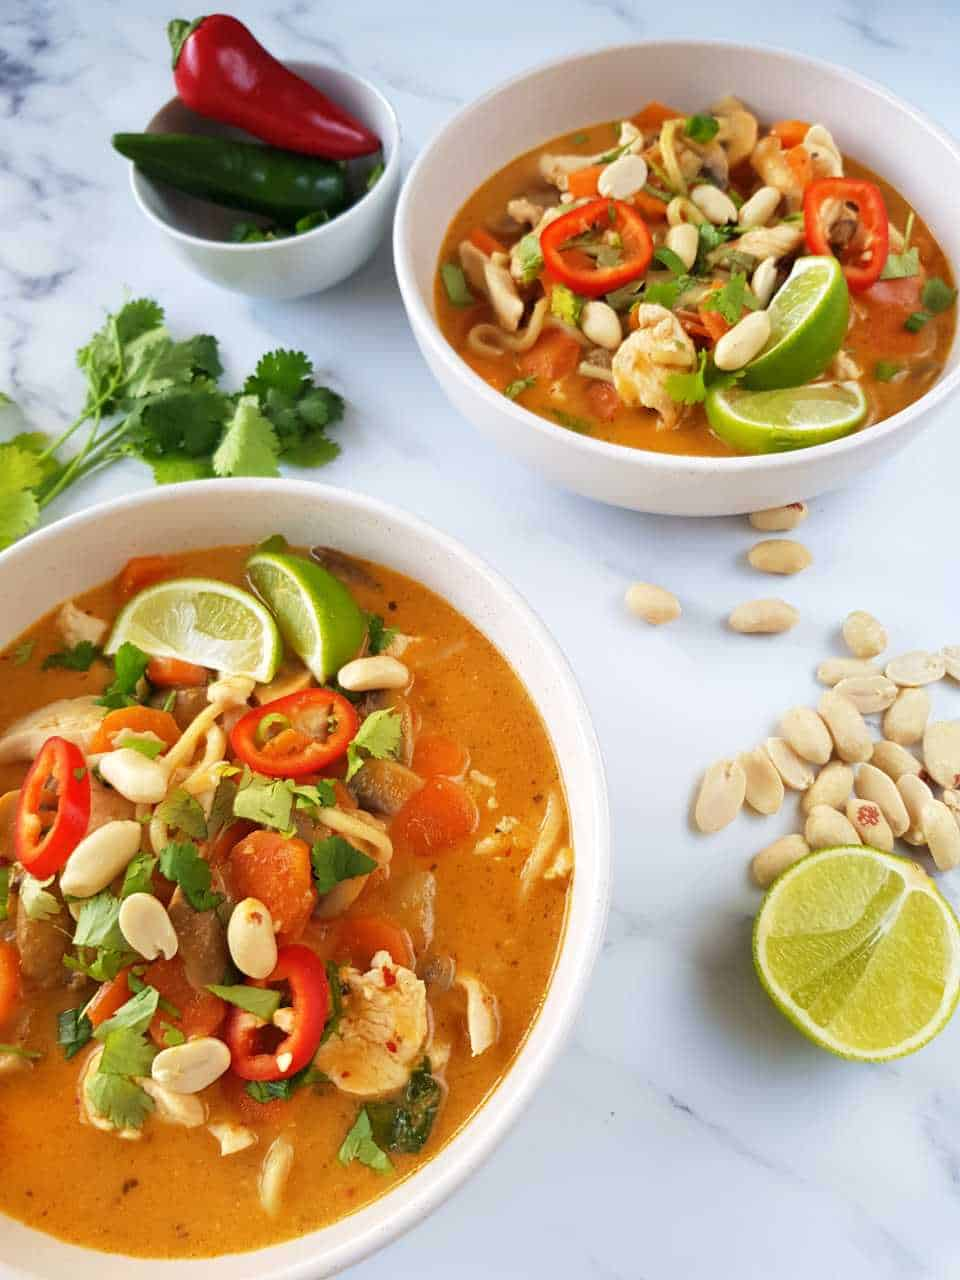 Thai chicken noodle soup in white bowls on a marble table with peanuts, lime, fresh coriander and chili scattered.